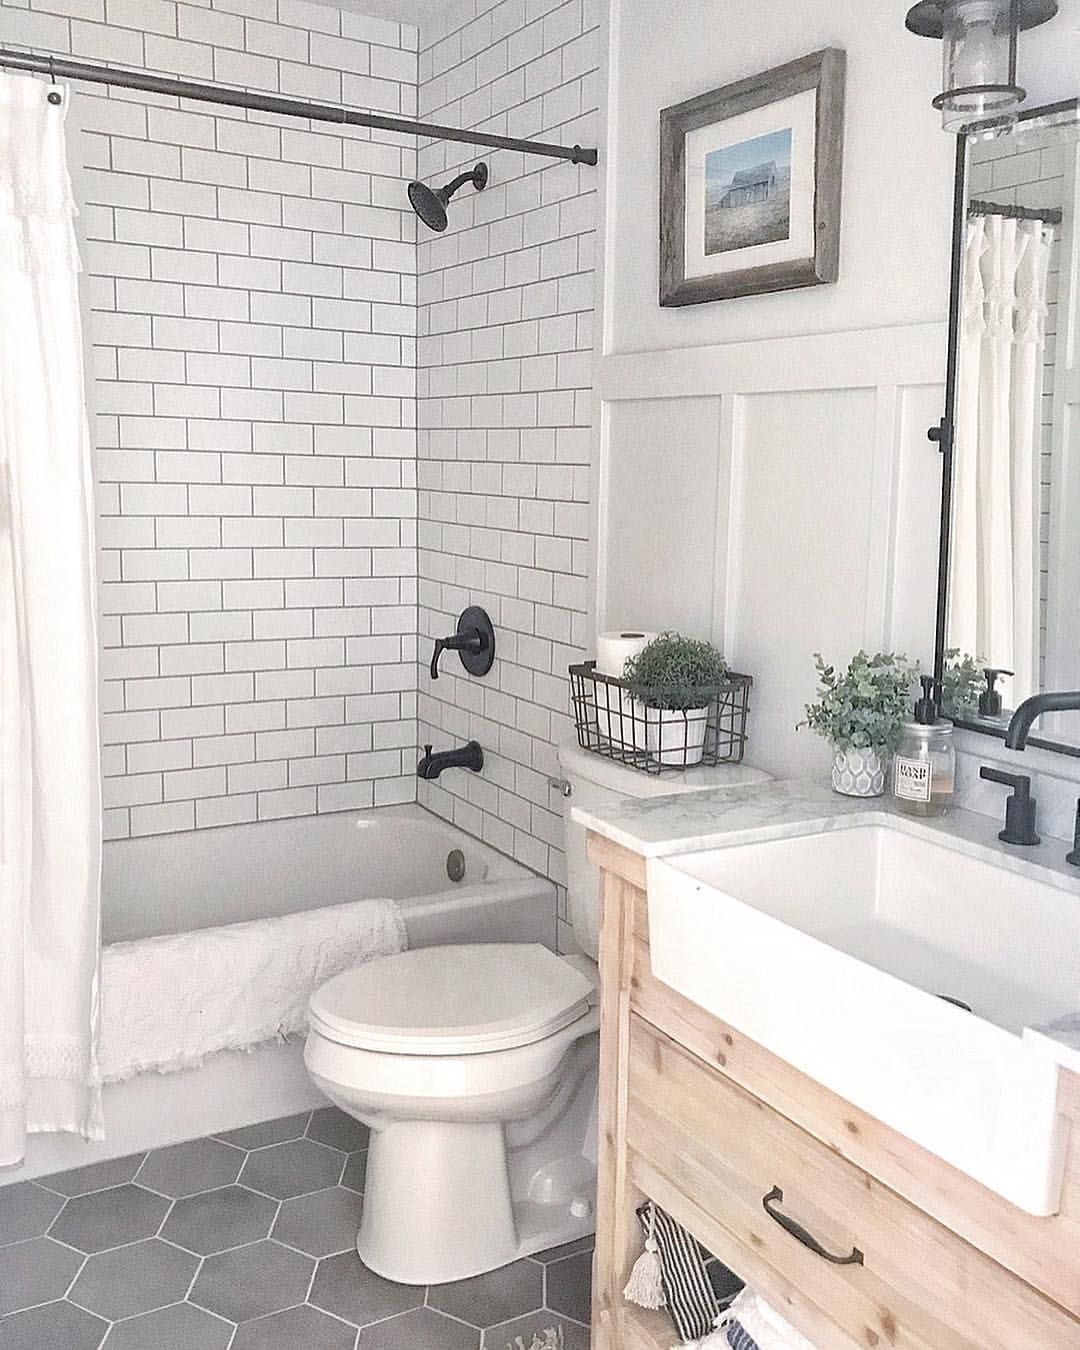 top options and ideas for remodeling your bathroom small on best bathroom renovation ideas get your dream bathroom id=34822